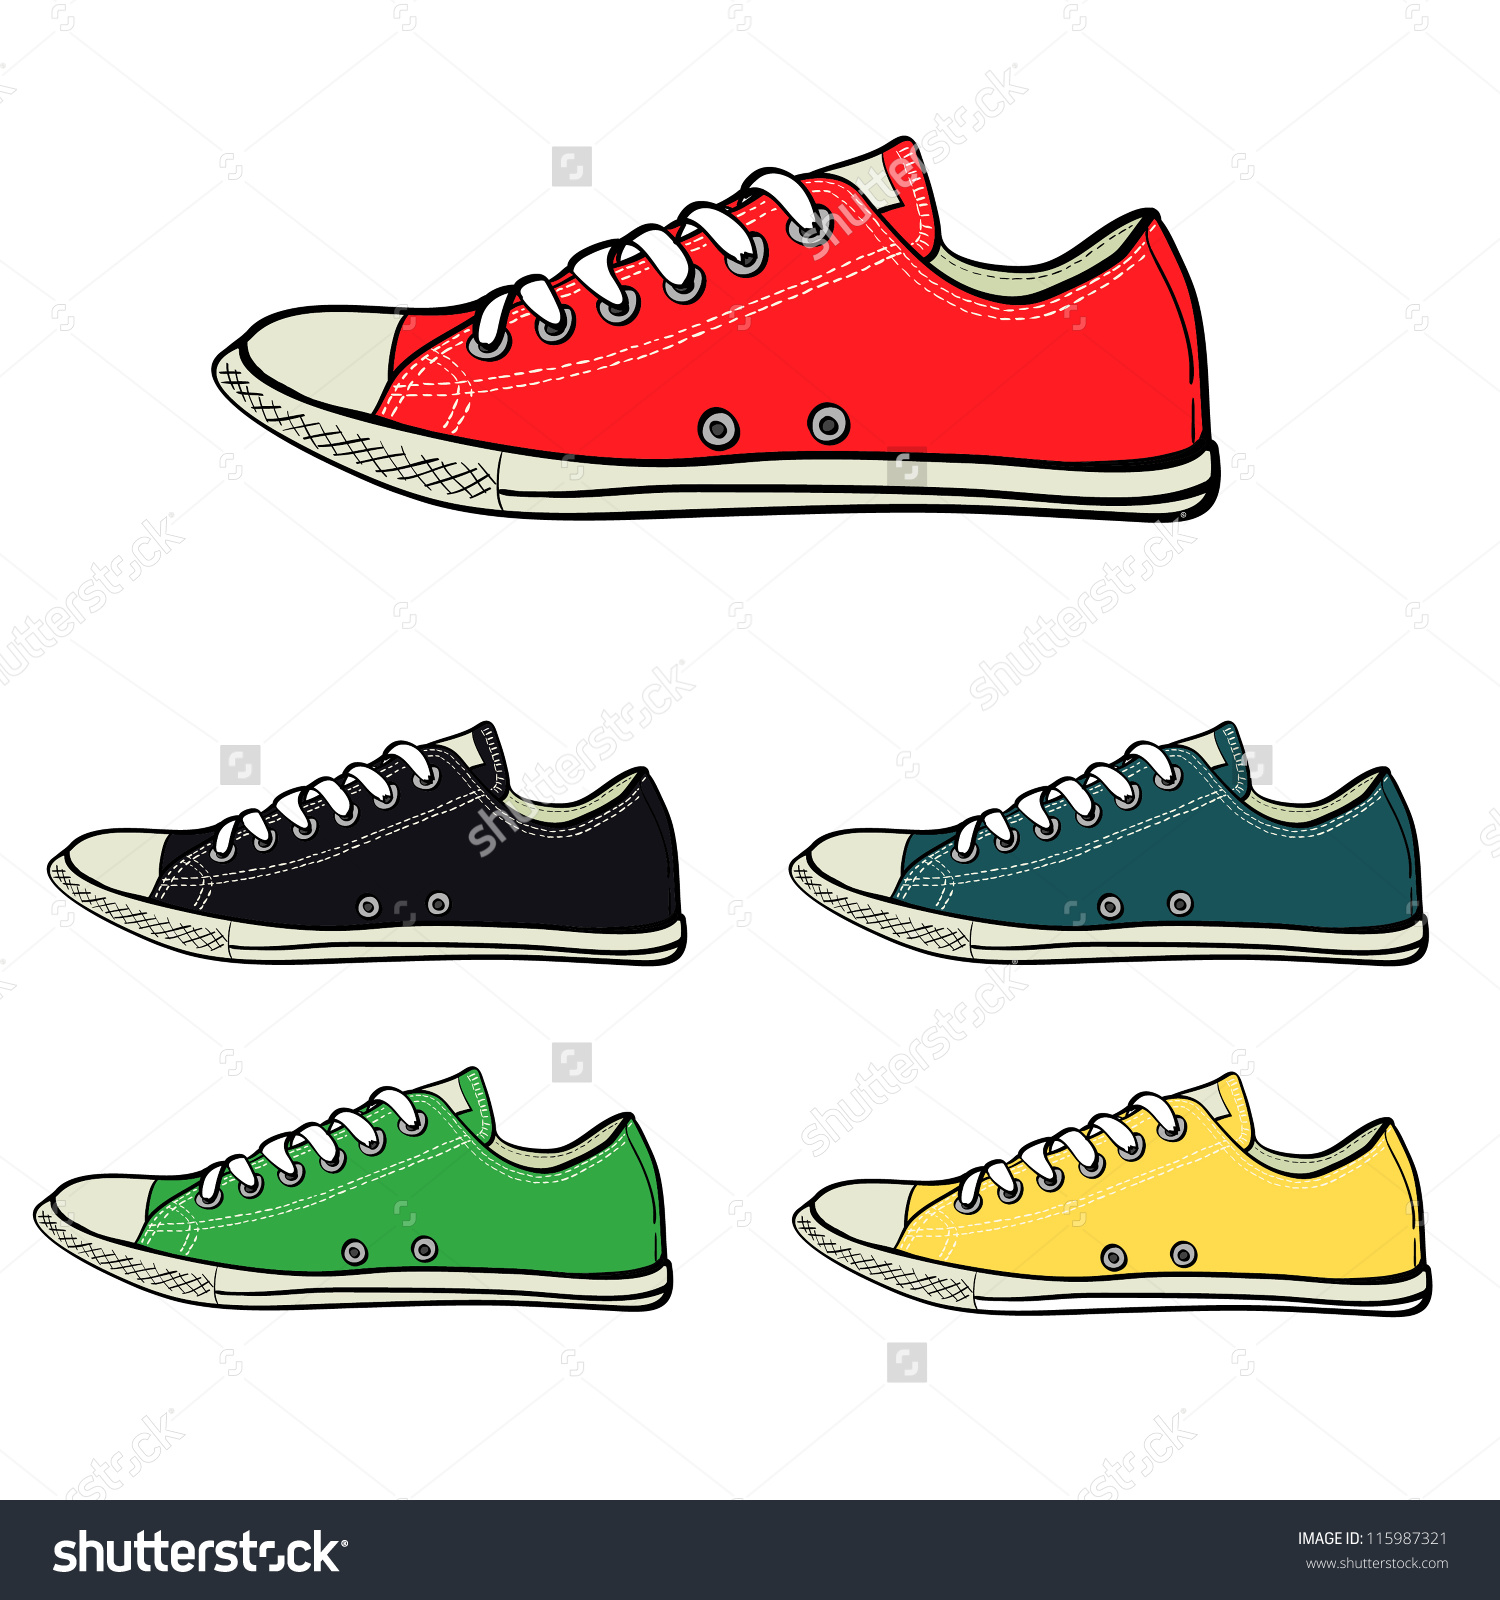 Set Low Sneakers Drawn Sketch Style Stock Vector 115987321.